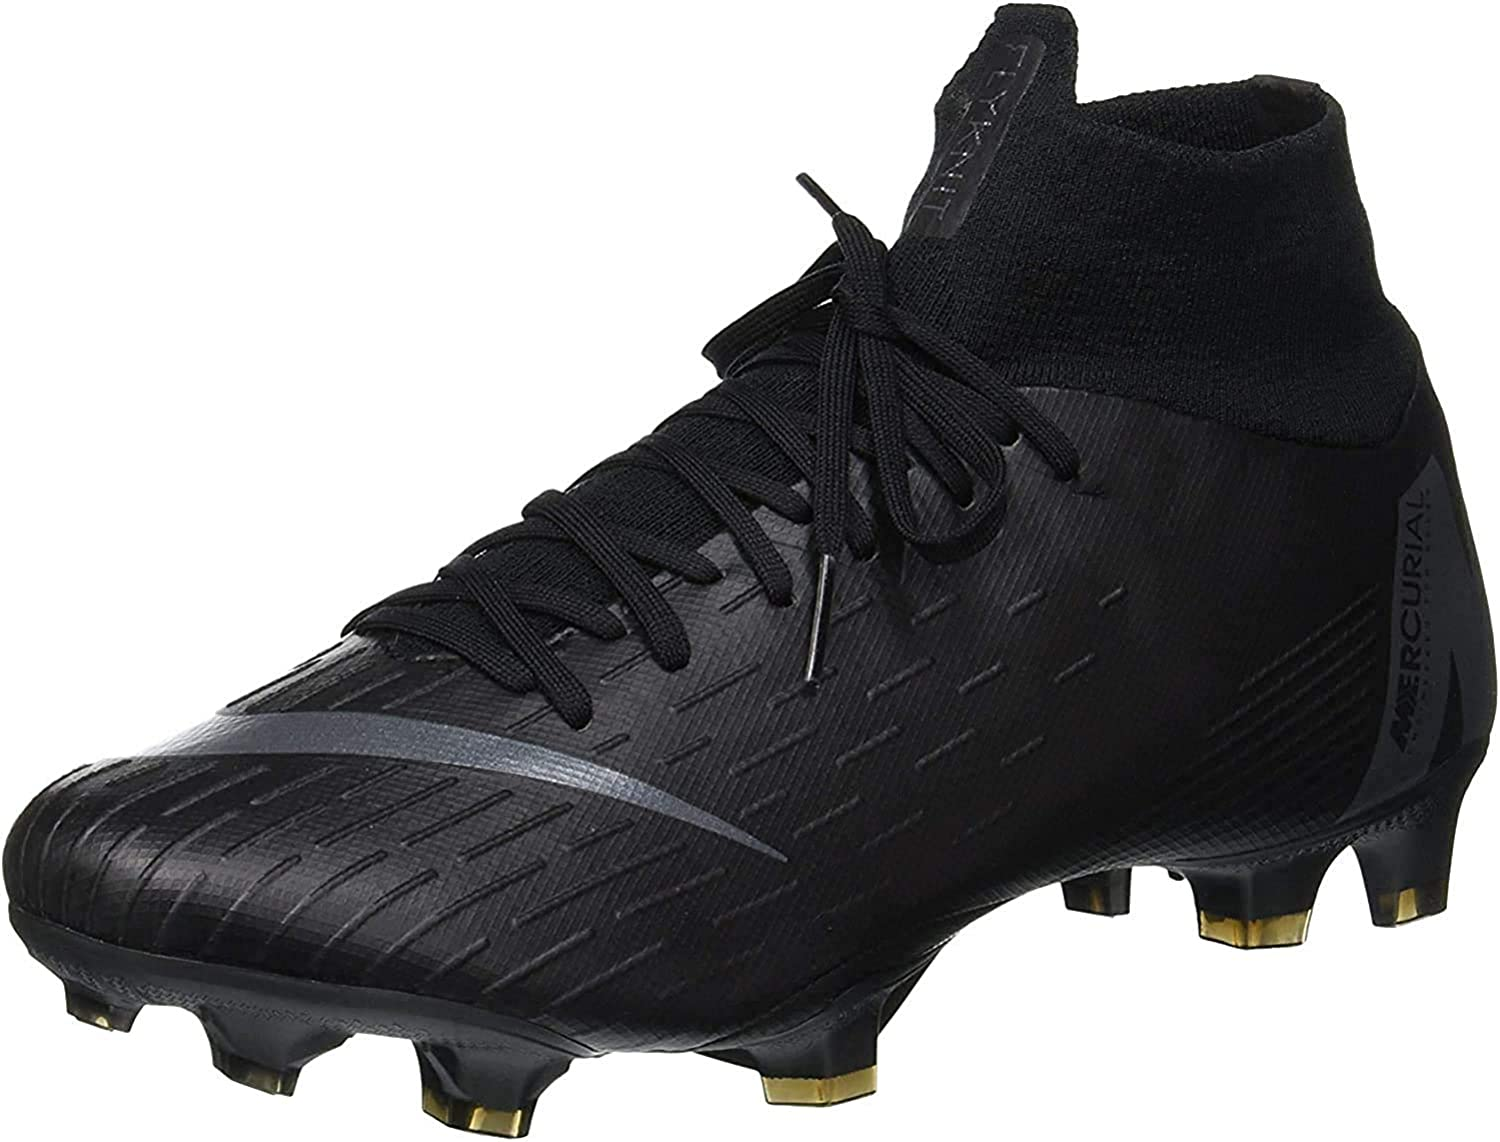 Operare sposato Essere soddisfatto  Amazon.com | Nike Women's Footbal Shoes | Softball & Baseball